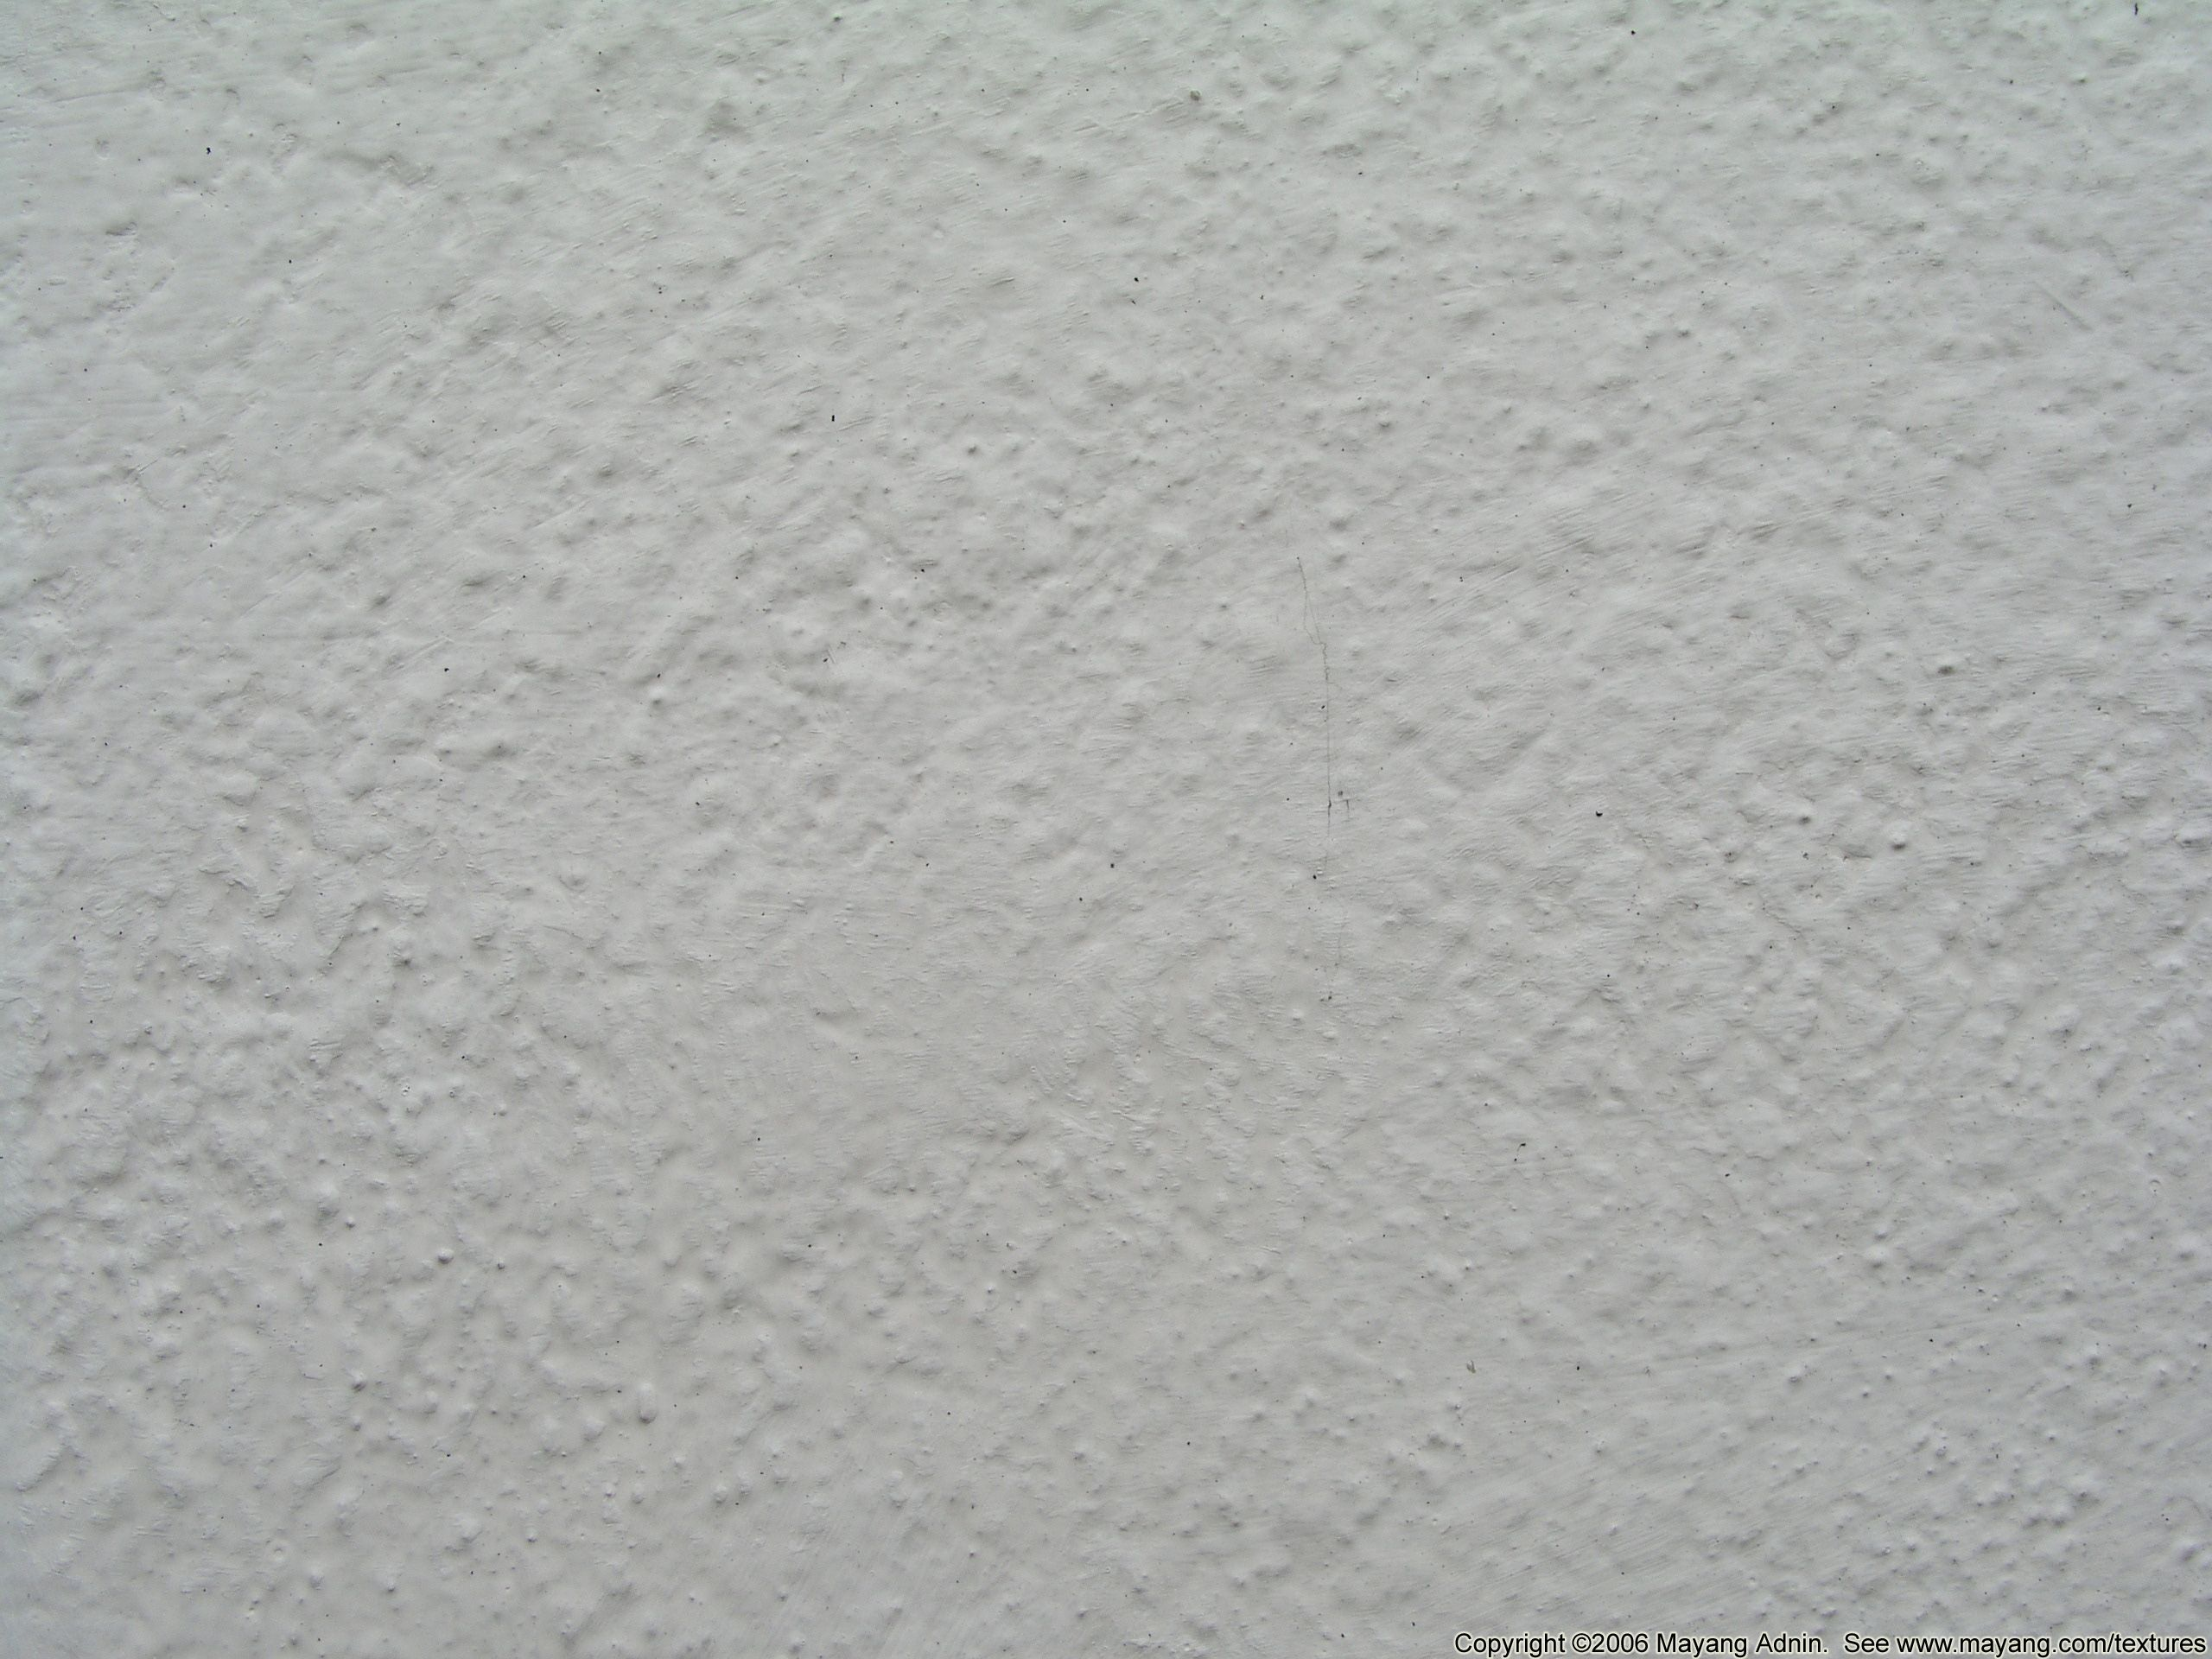 Dry Wall Texture Ceiling Texture Ceiling Texture Types Textured Walls